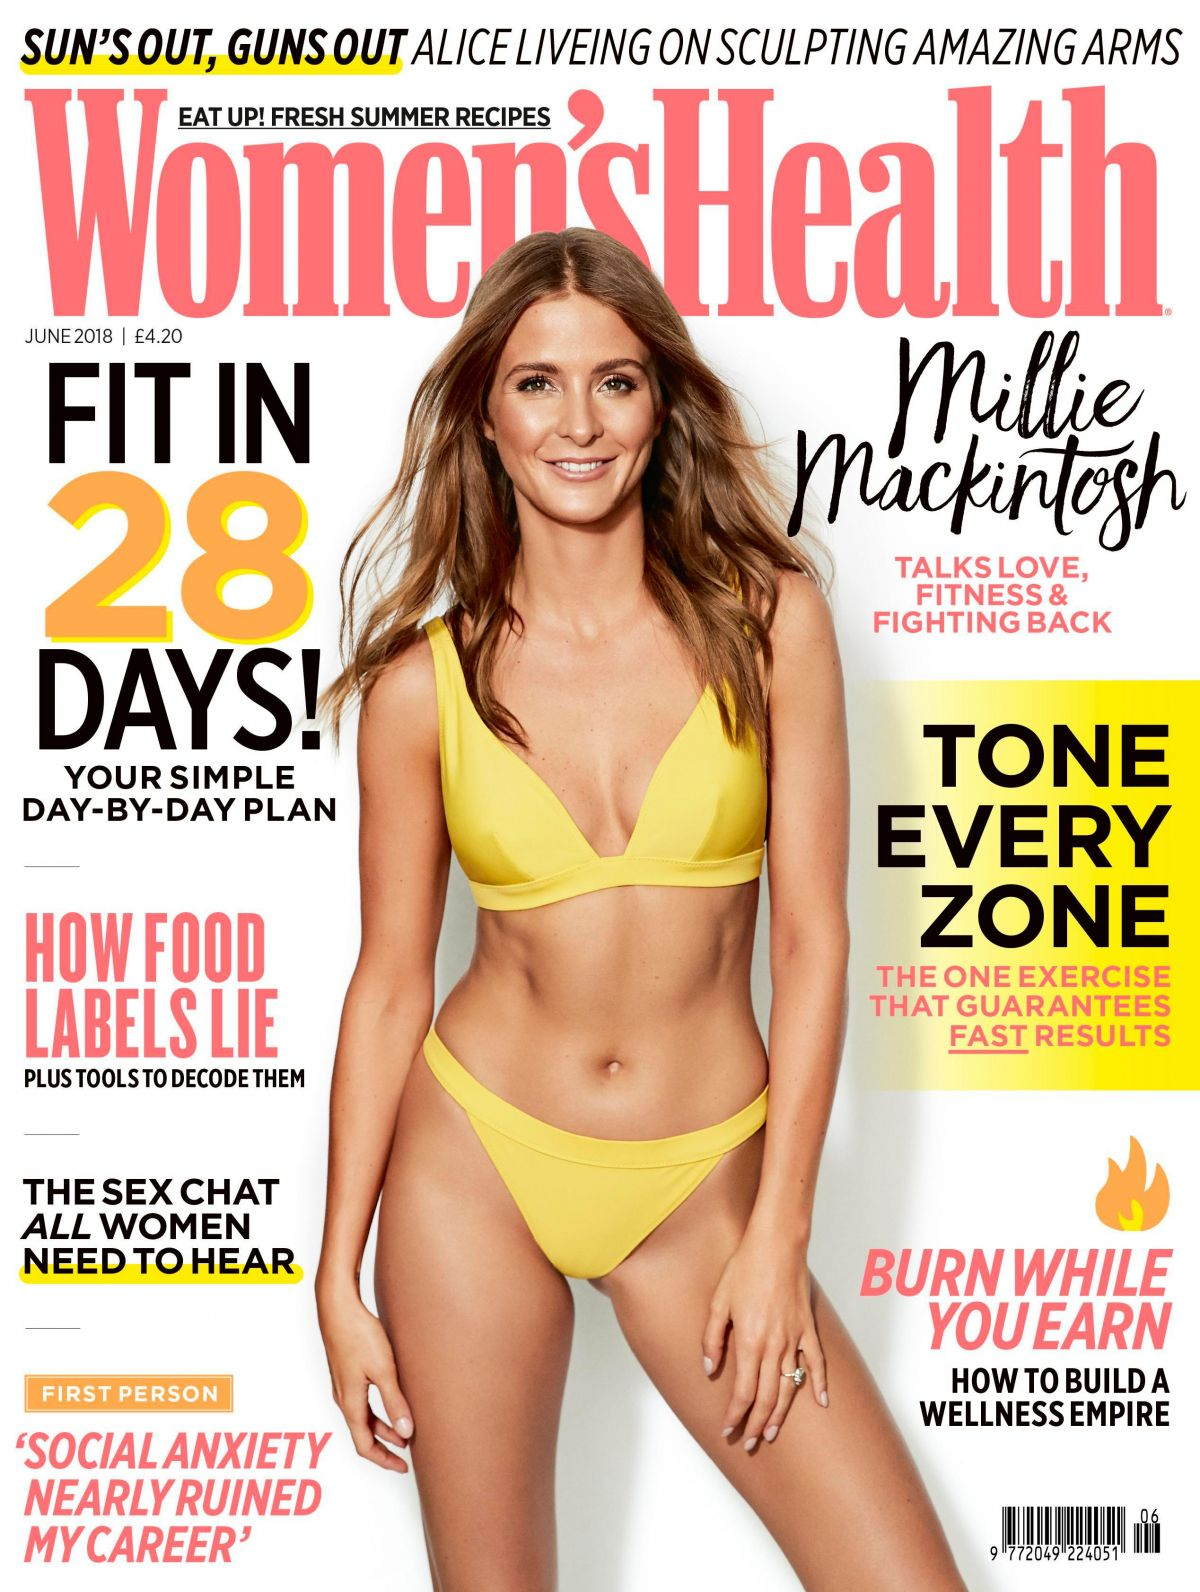 Millie Mackintosh in Women's Health Magazine, UK June 2018 Issue